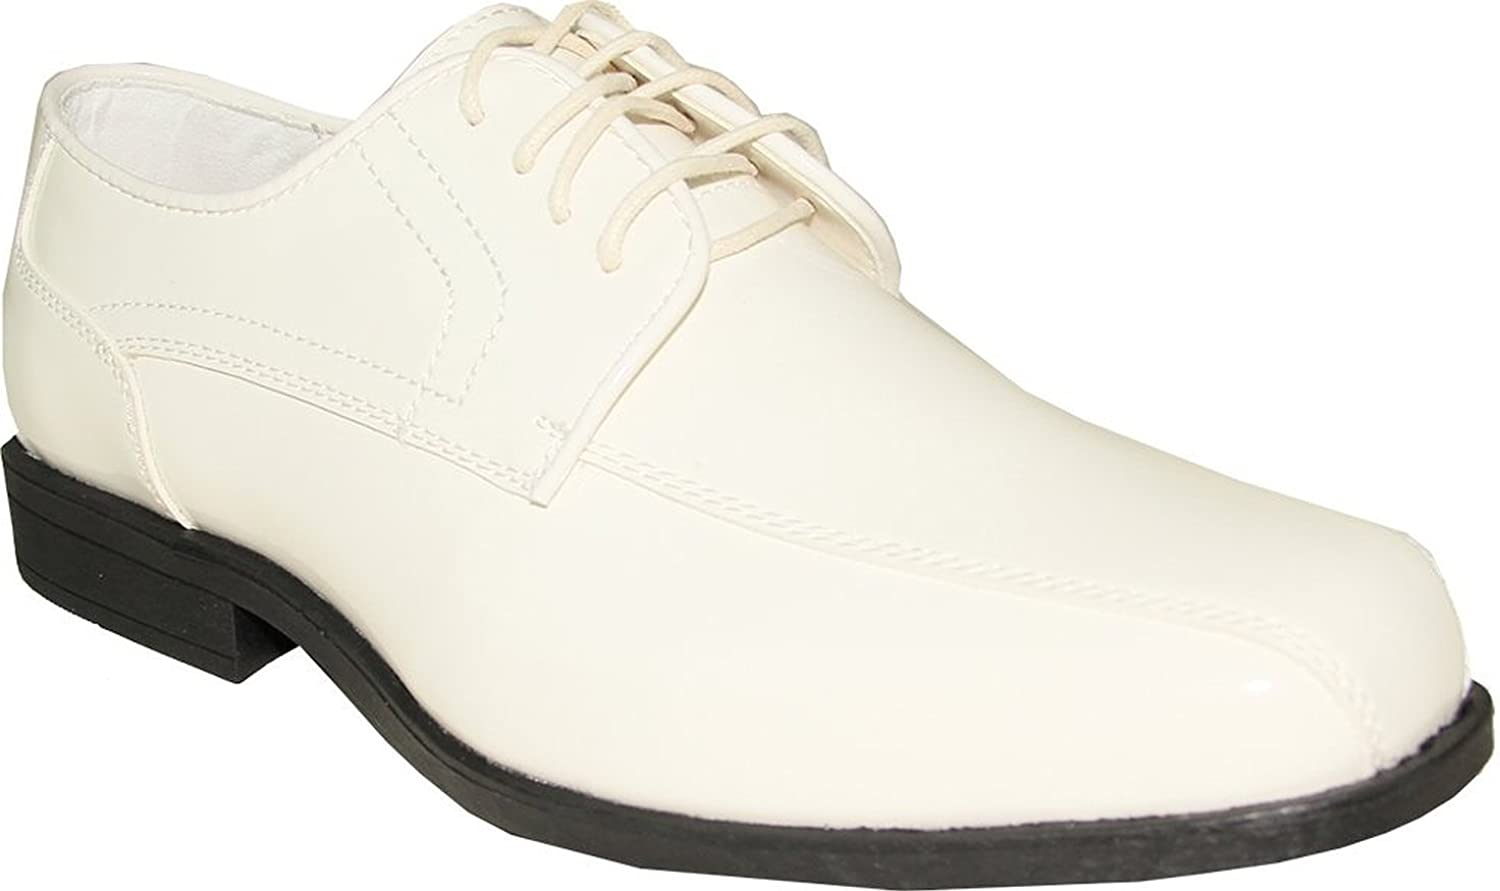 Jean Yves JY02 Tuxedo Dress shoes Double Runner for Wedding, Prom and Formal Event Ivory Patent